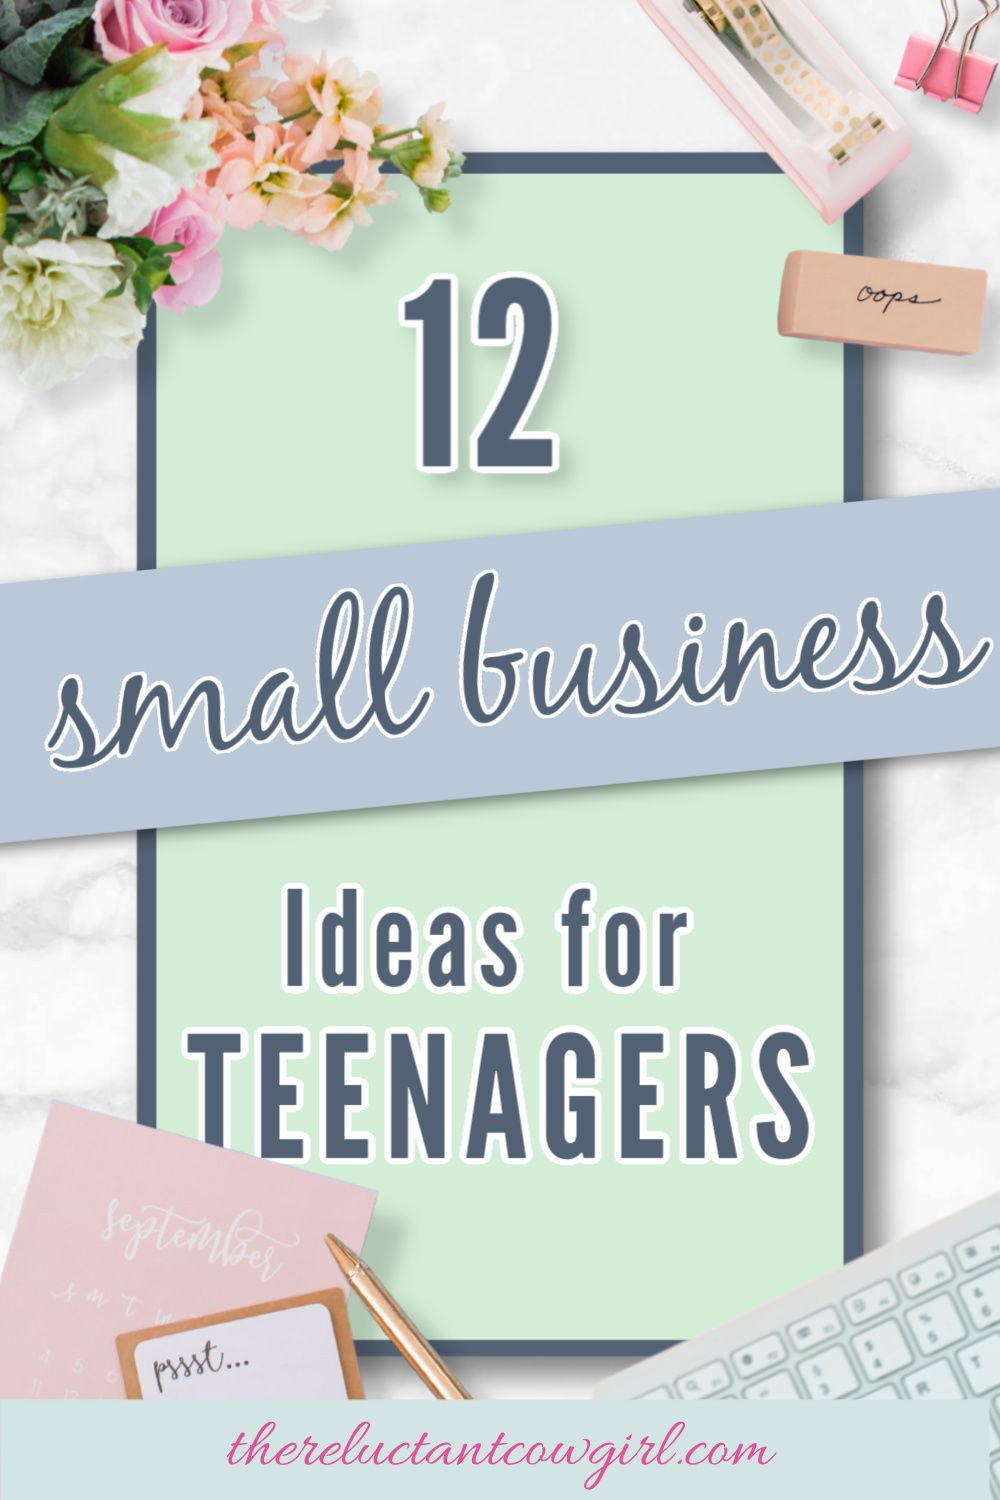 12 Smart Small Business Ideas for Teenagers in 2020 Best